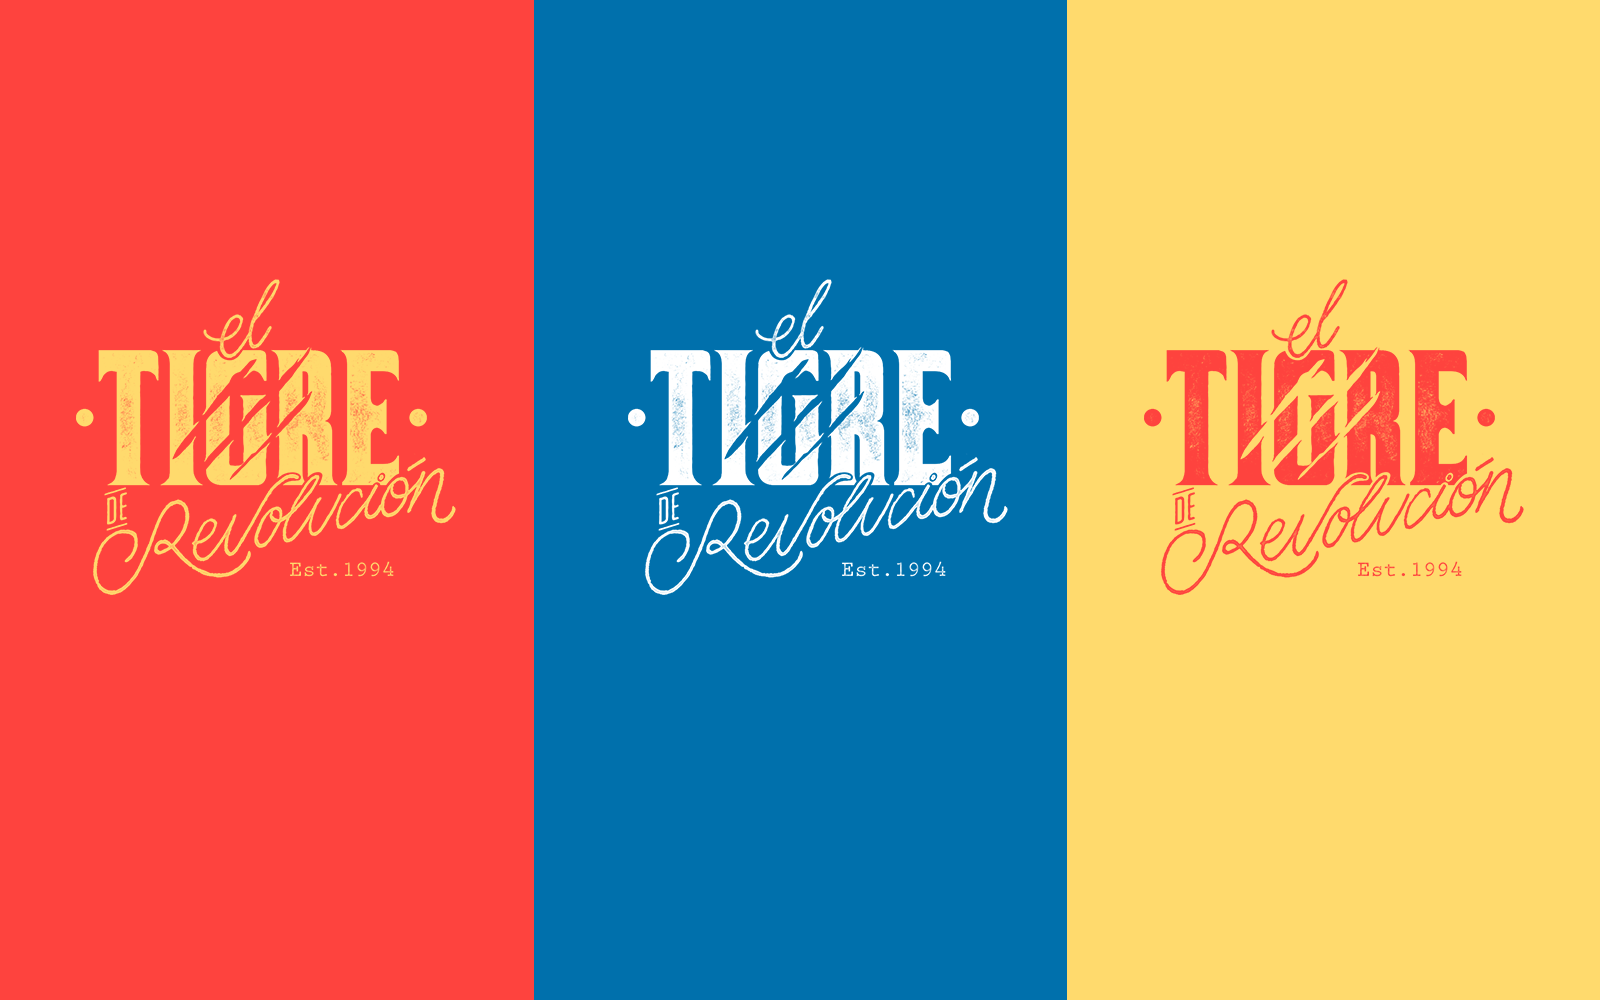 Illustration and Branding: Tigre de Revolución